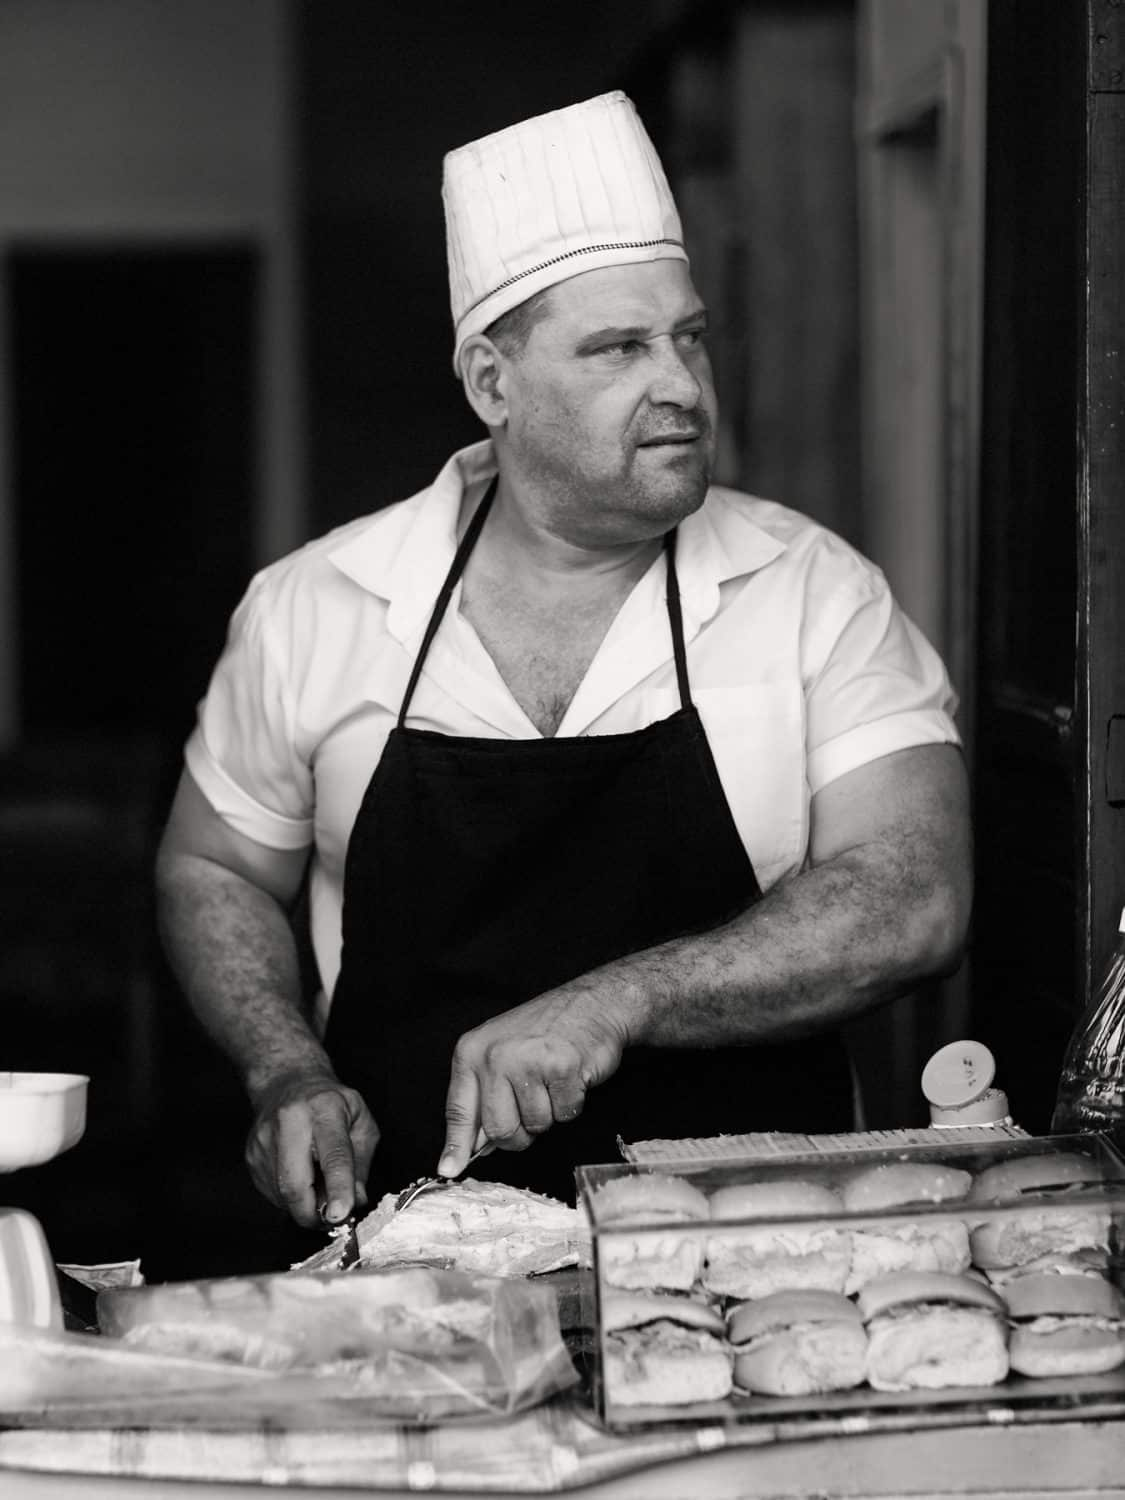 The sandwich man is very busy during lunch time and he is just gazing a young girl who passed by….